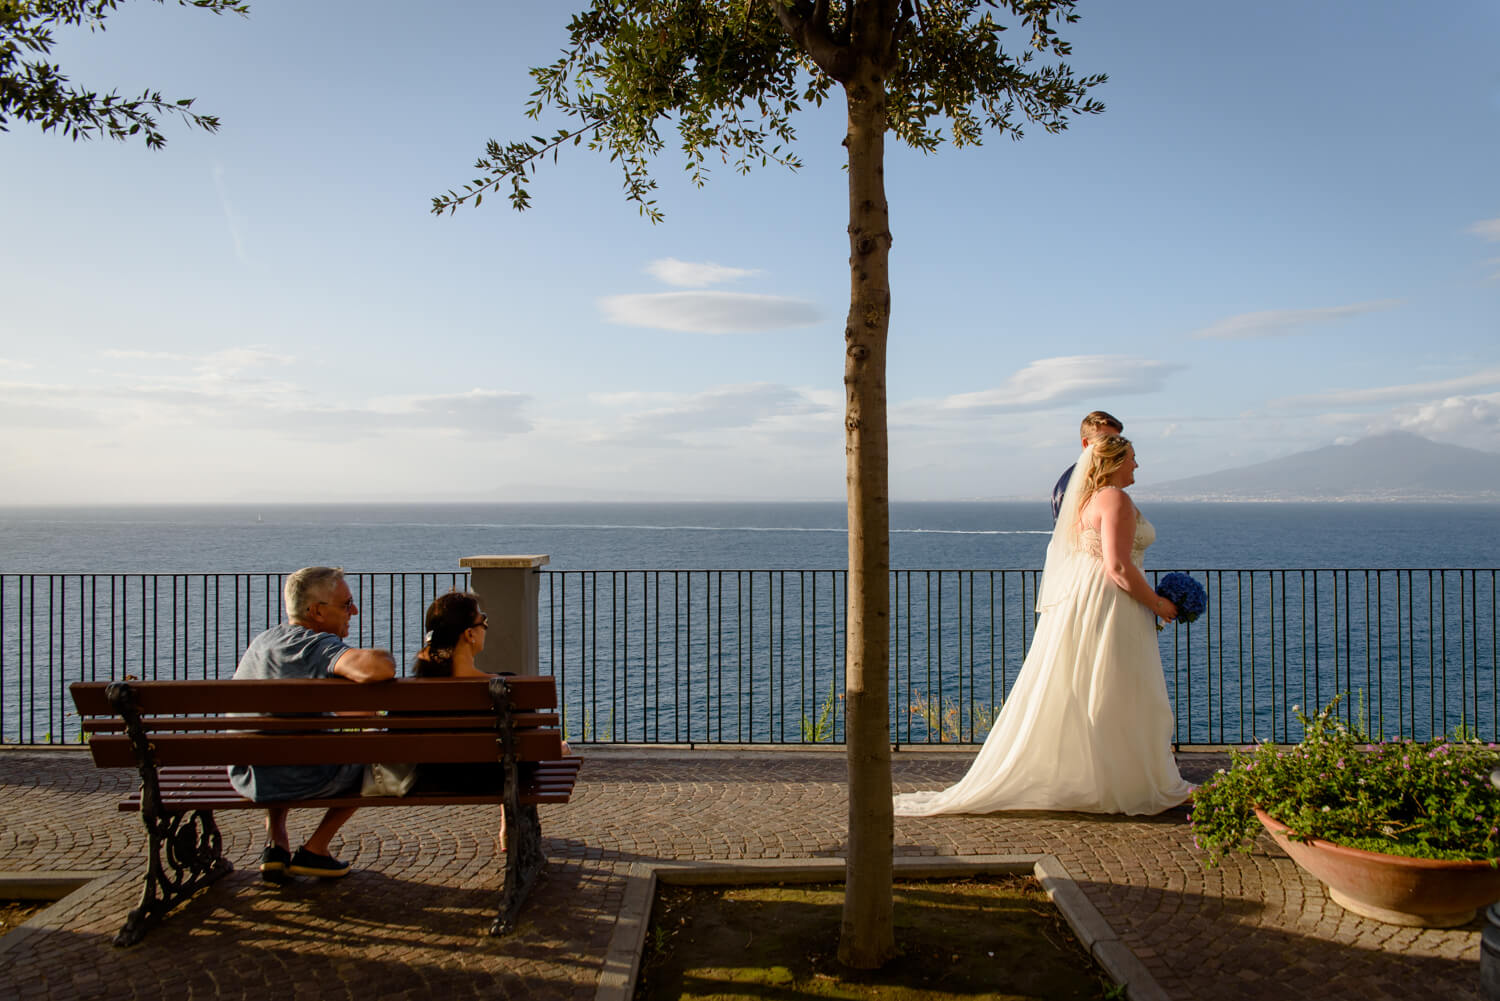 Wedding abroad in Sorrento Italy